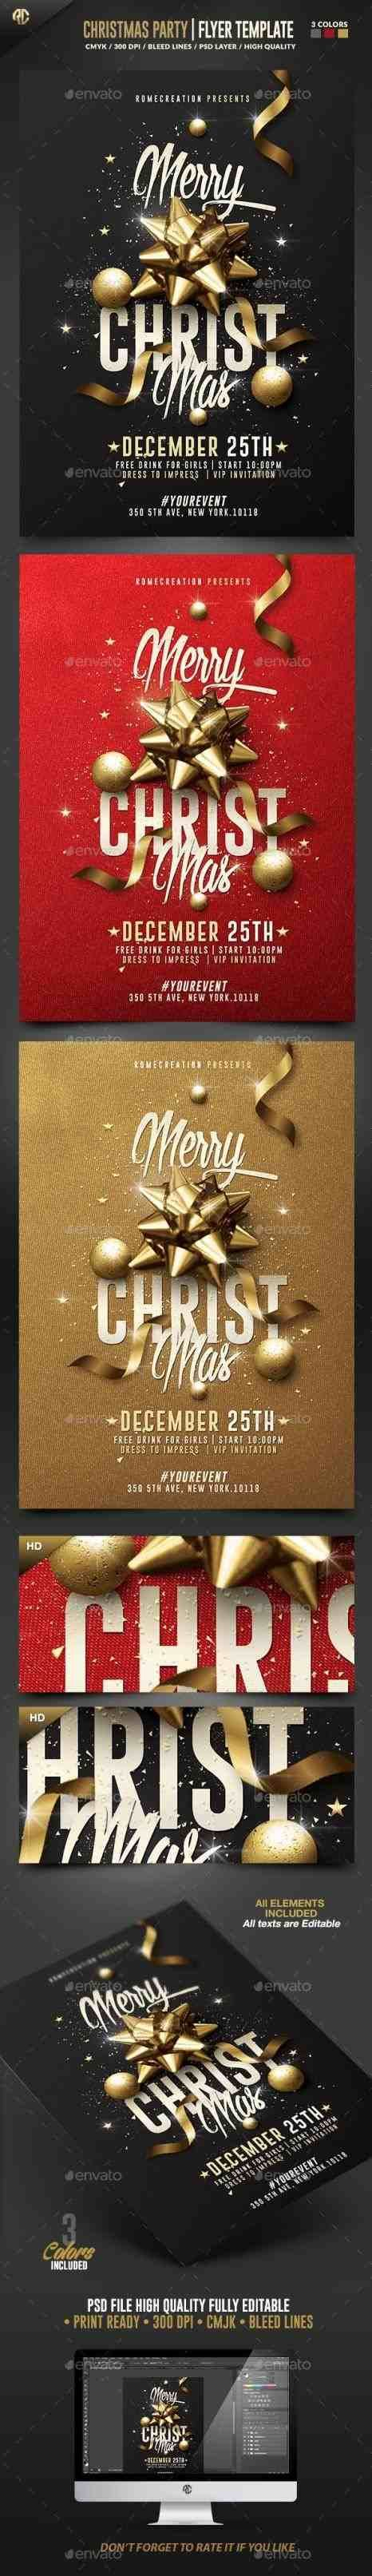 Post Christmas Party Ideas Part - 45: New Post Christmas Party Flyer Background